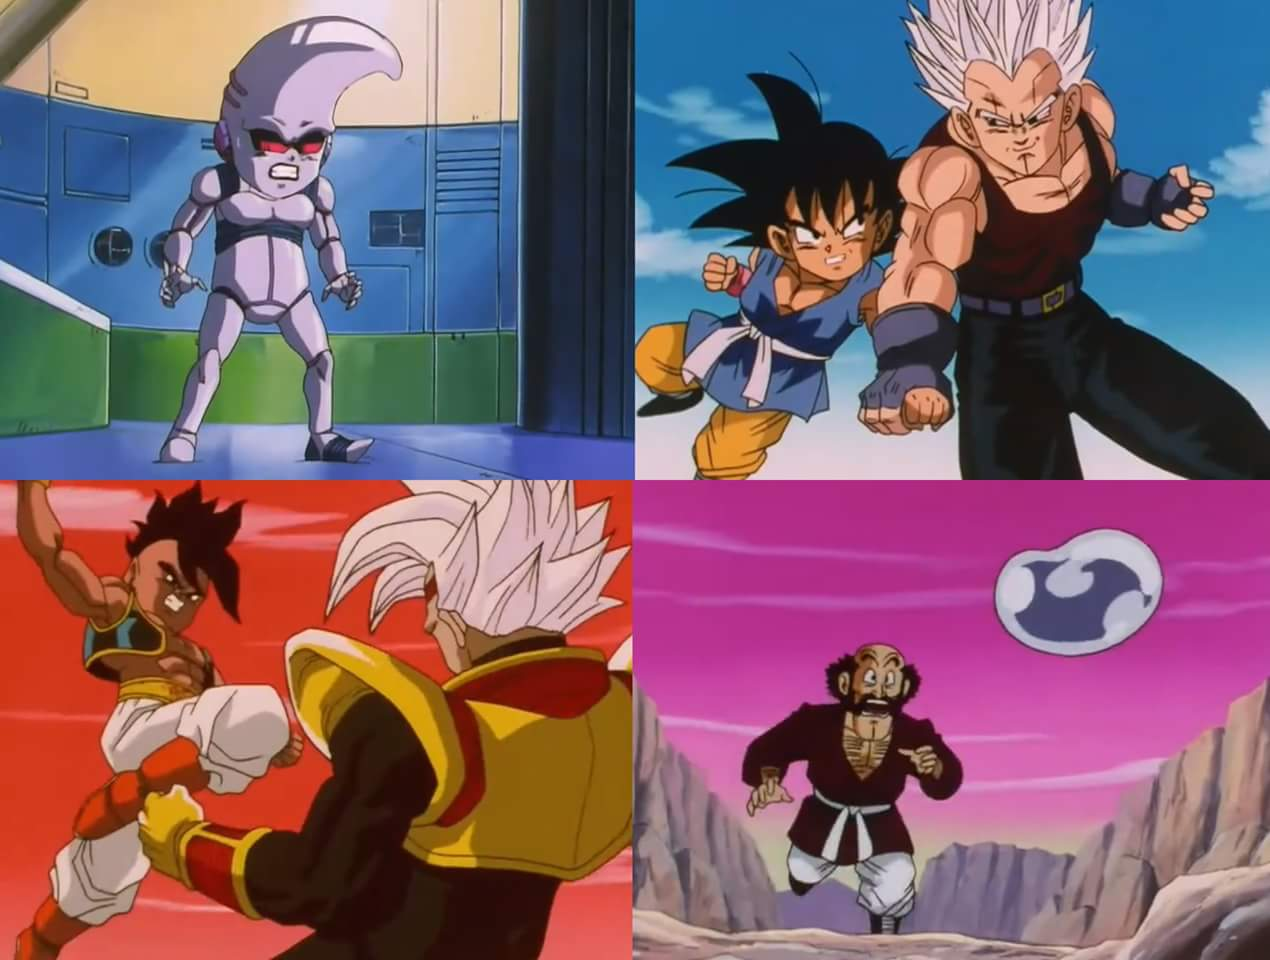 Cmon Dbz Gt Wasnt Really That Bad Dragon Ball Know Your Meme